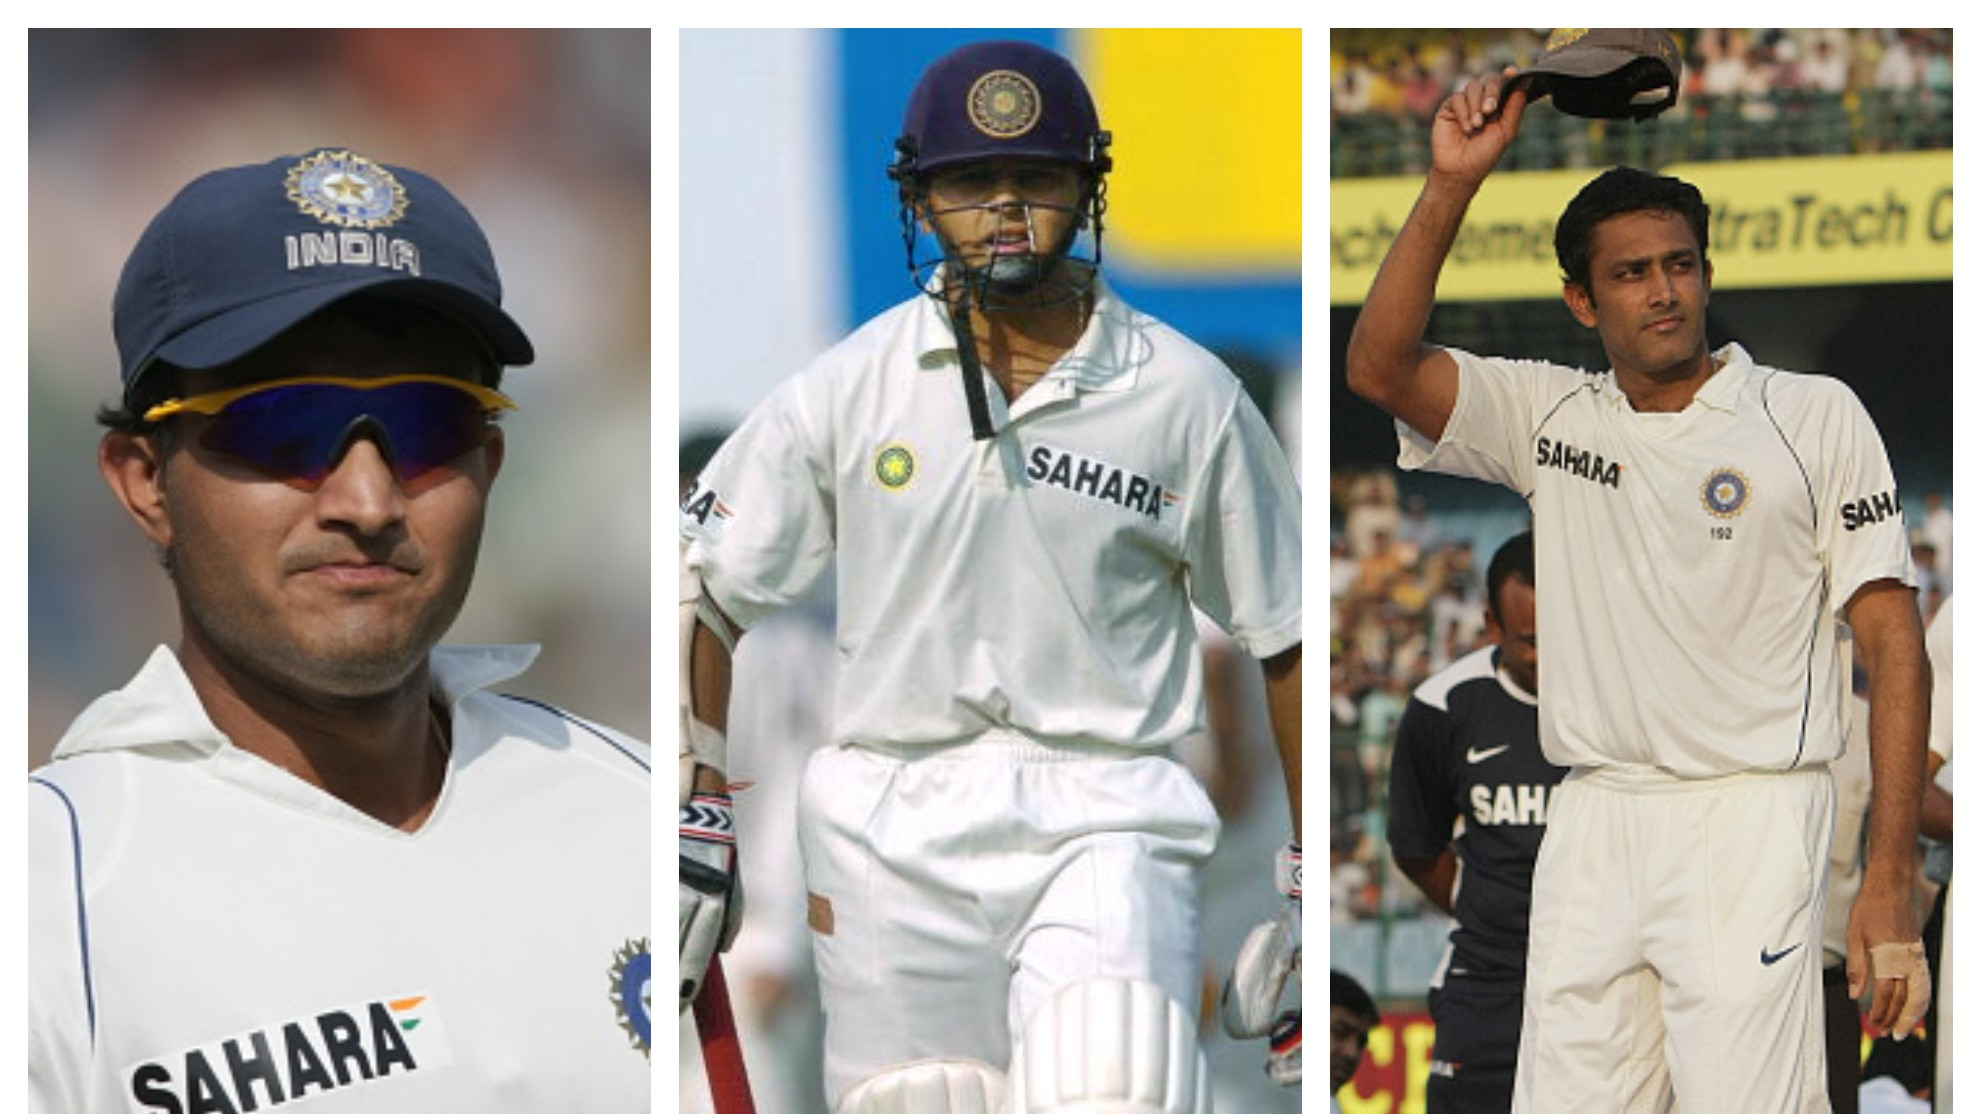 Parthiv Patel hails Sourav Ganguly, Anil Kumble as greatest Indian captains he played under